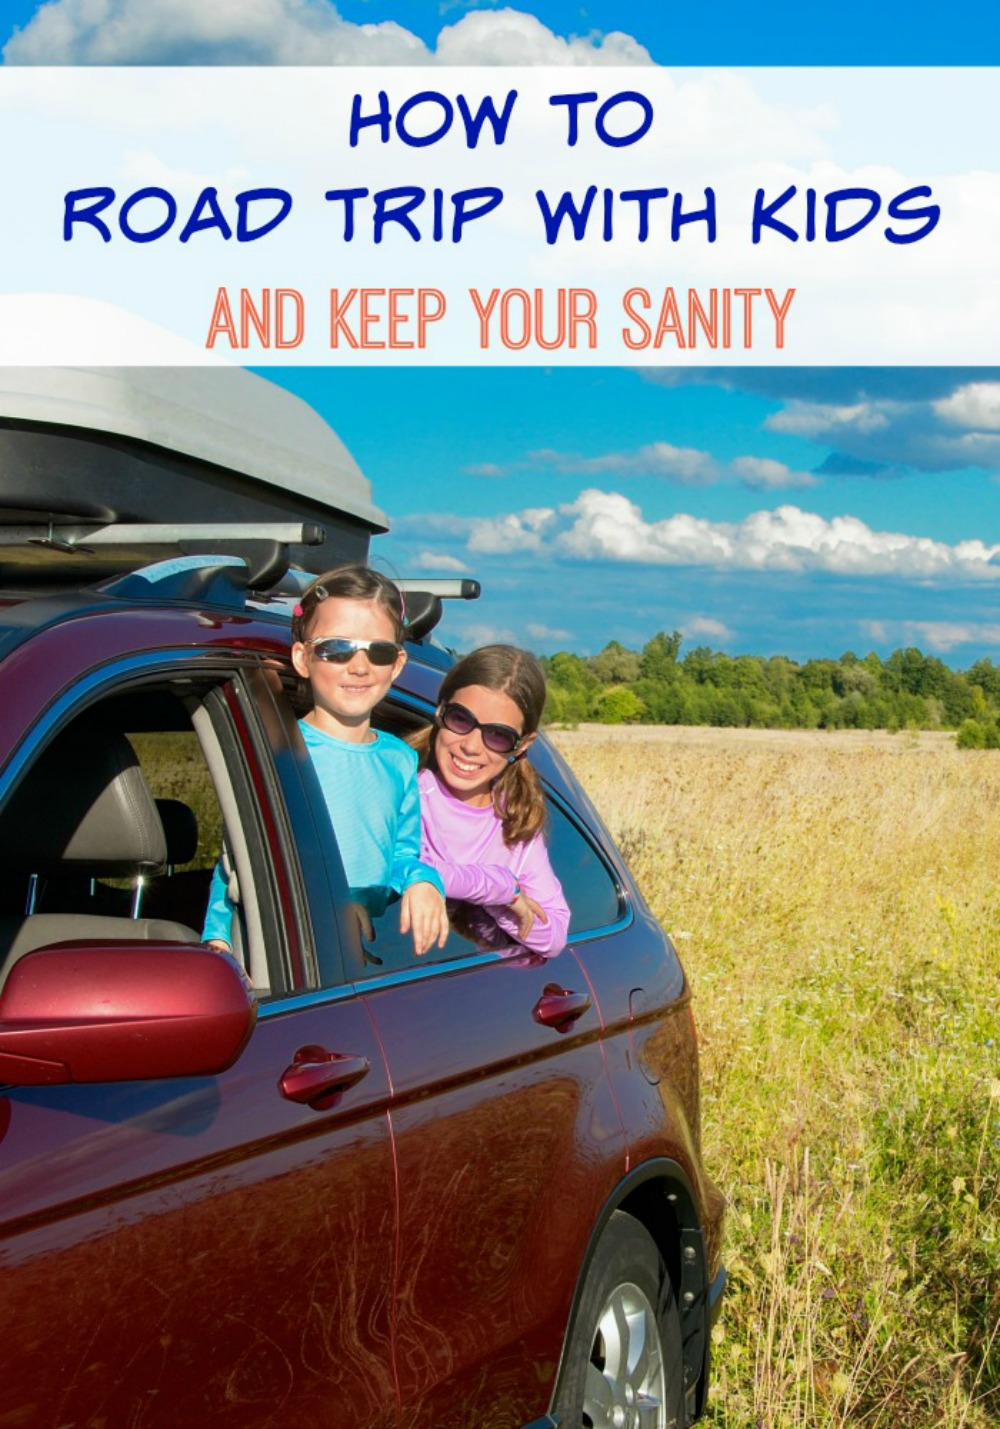 Heading a road trip this summer? If you have children road trips can be hard. Check out my How to Road Trip with Kids and Keep Your Sanity